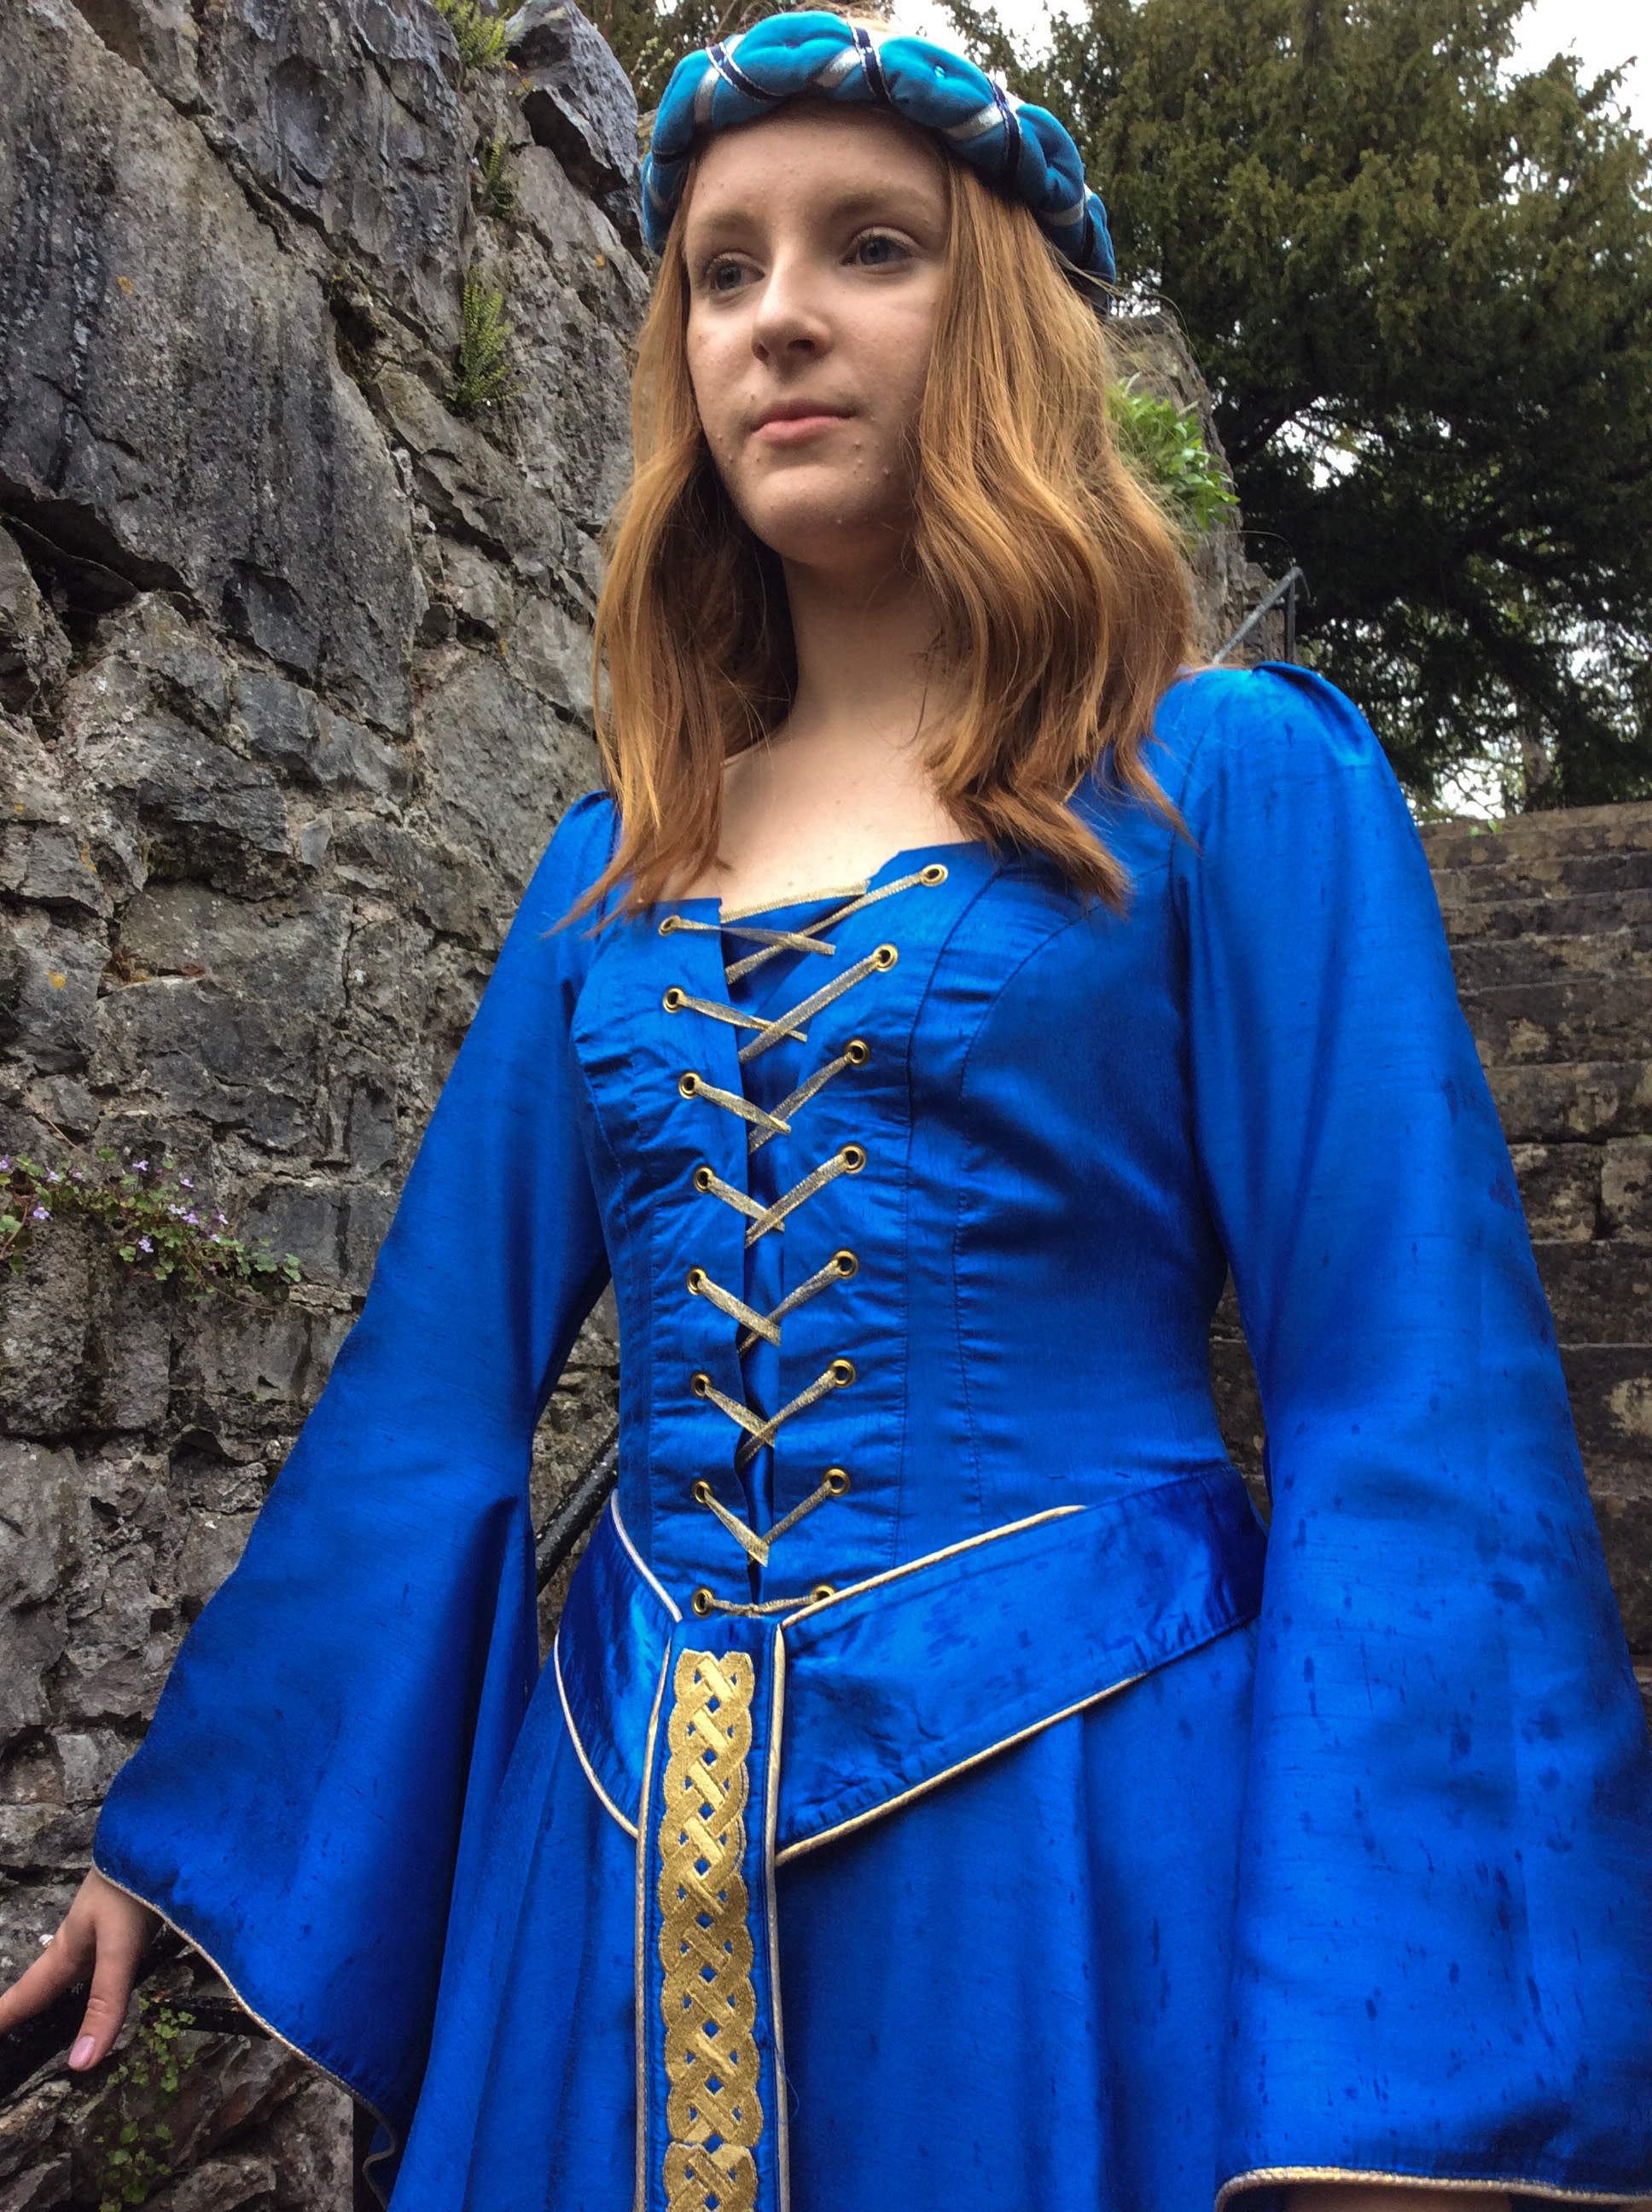 Electric blue medieval dress to hire with bell sleeves and gold lacing